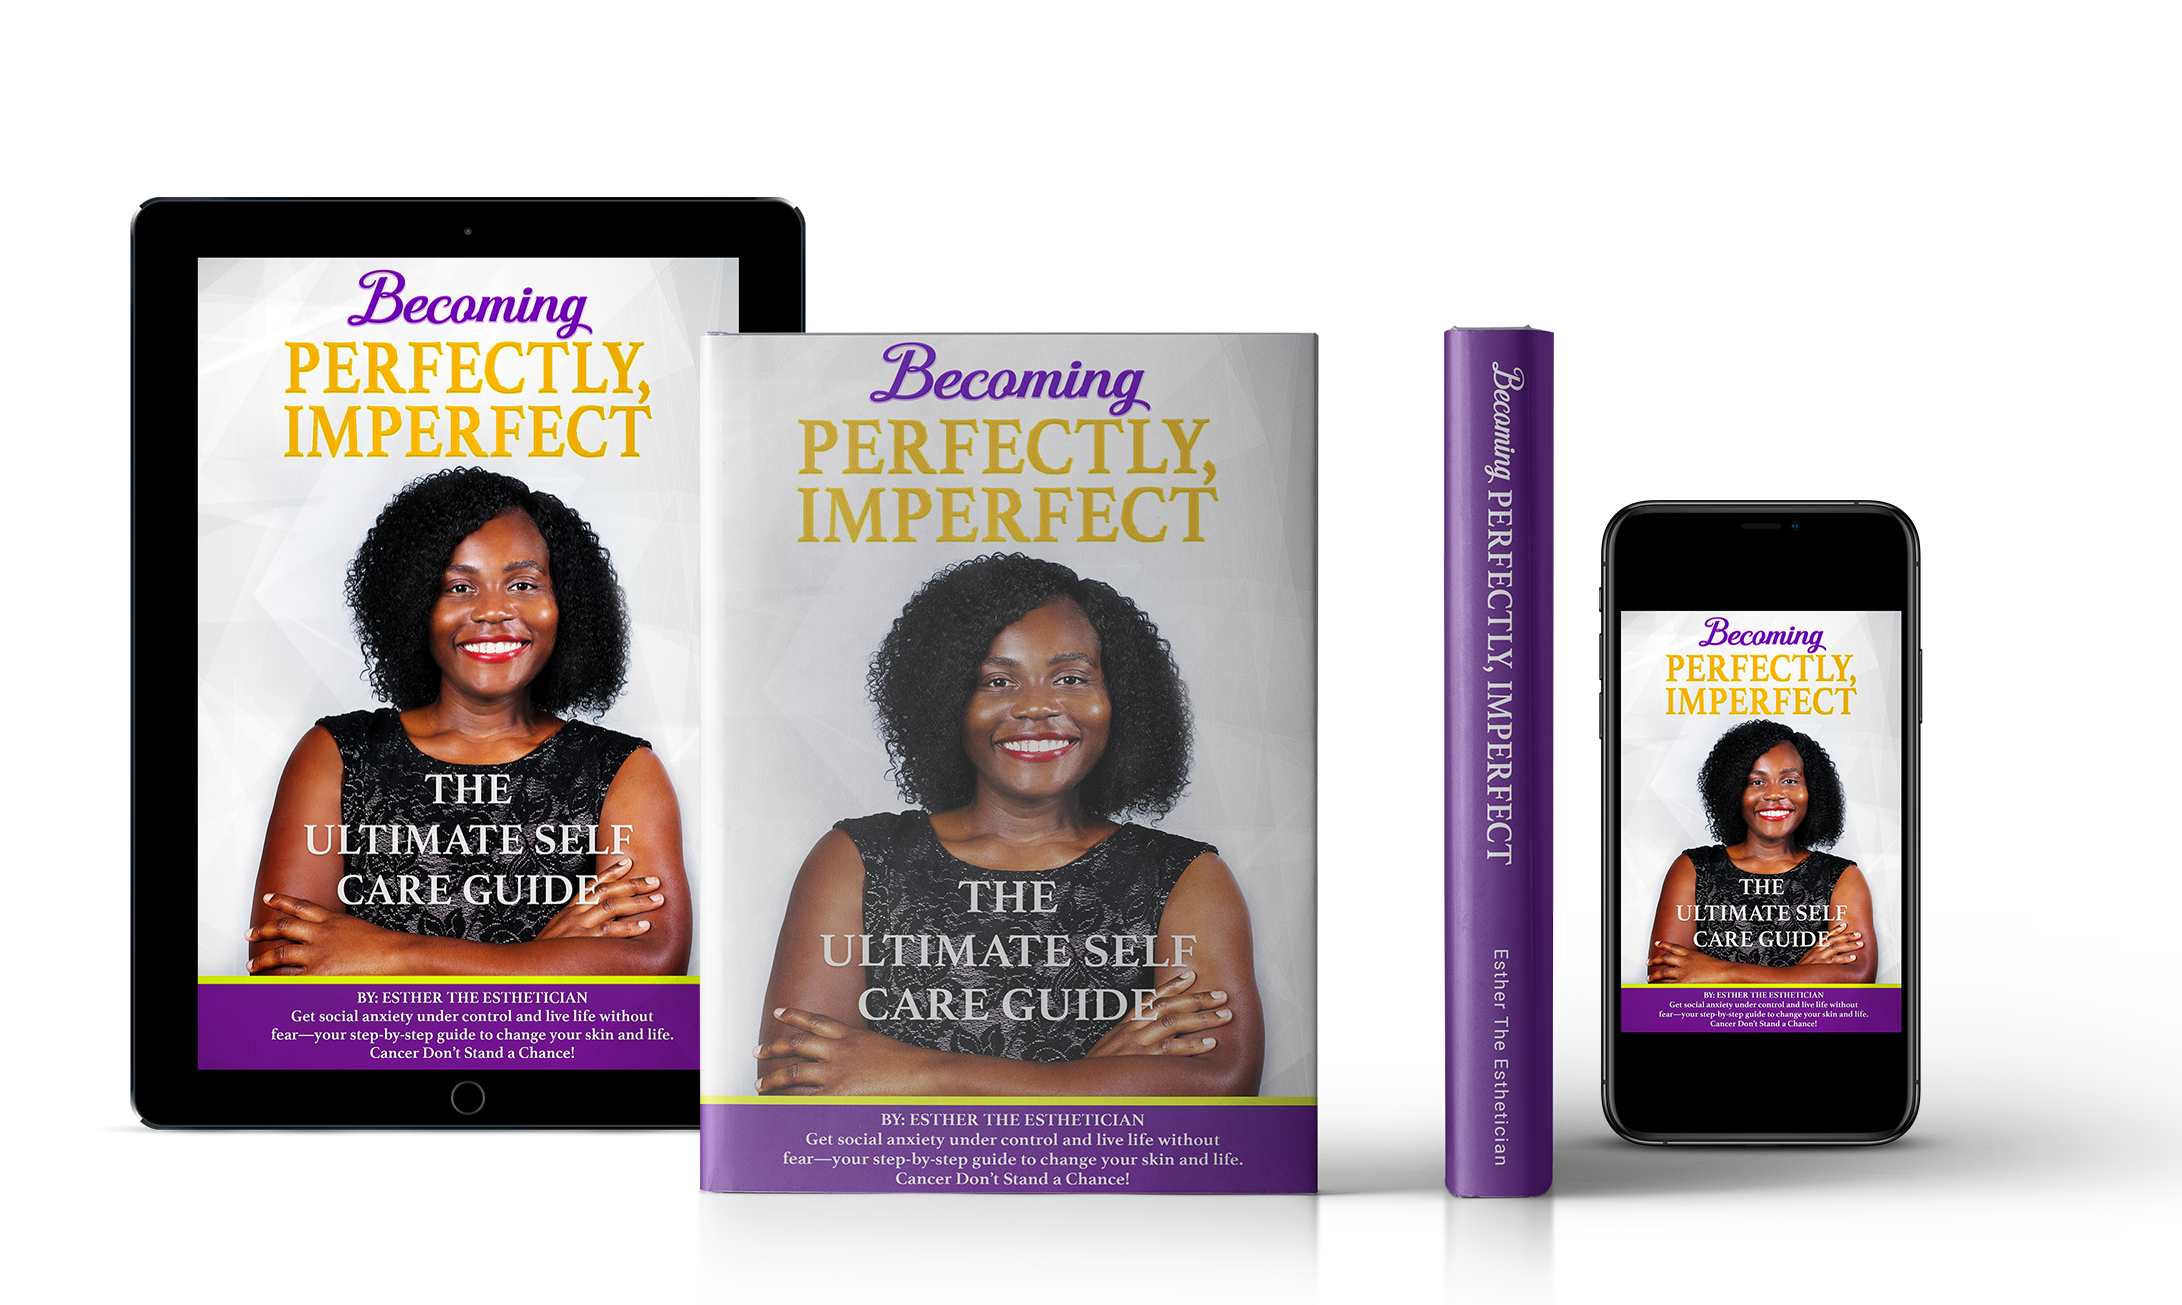 Becoming perfectly, imperfect. The ultimate self care guide book by esther the esthetician nelson in tampa florida luxury lotus spa owner tampa florida acne scars specialist black esthetician